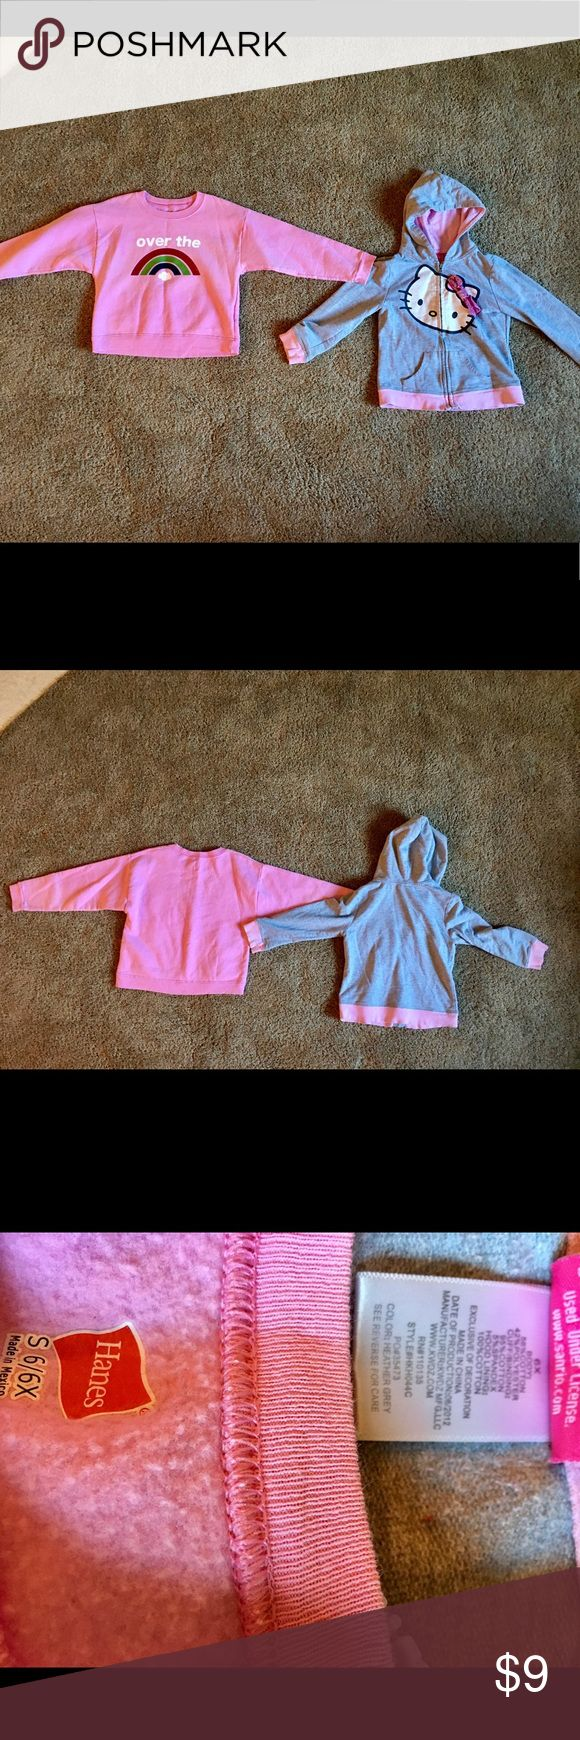 2 Girls Sweatshirts Size 6X 2 Girls Sweatshirts Size 6X  Both super soft. No rips or tears. Small spots as shown on the pink sweatshirt.  I feel all my prices are fair but am more than willing to negotiate and bundle.   If you are ever dissatisfied with an order, please let me know before giving me bad feedback! I will always try to correct the problem, I am a shopper too! Sanrio Jackets & Coats